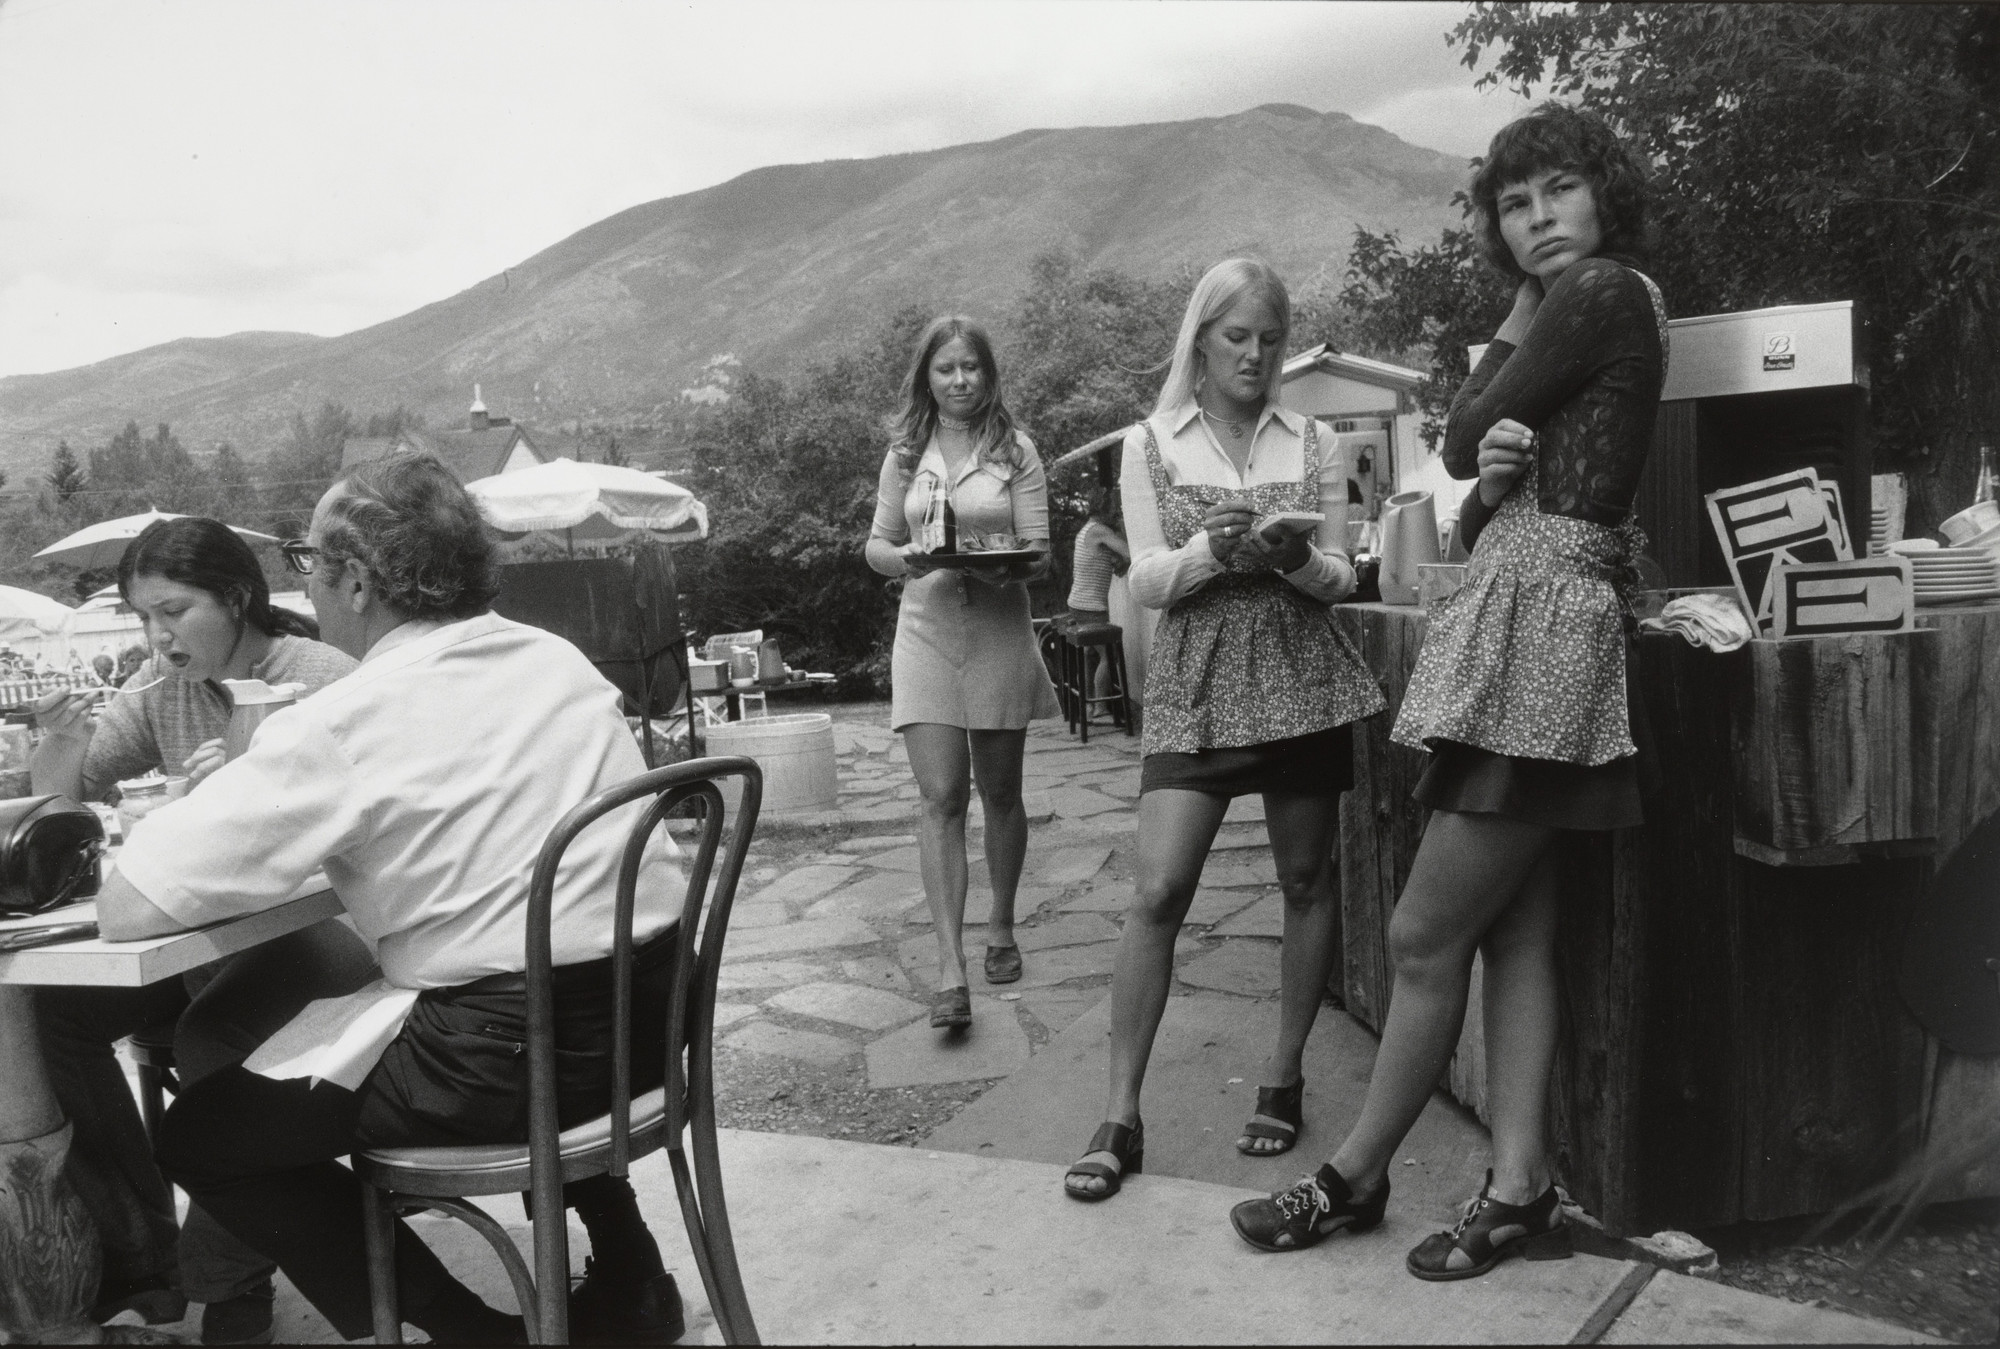 Garry Winogrand. Aspen, Colorado from Women are Beautiful. 1971